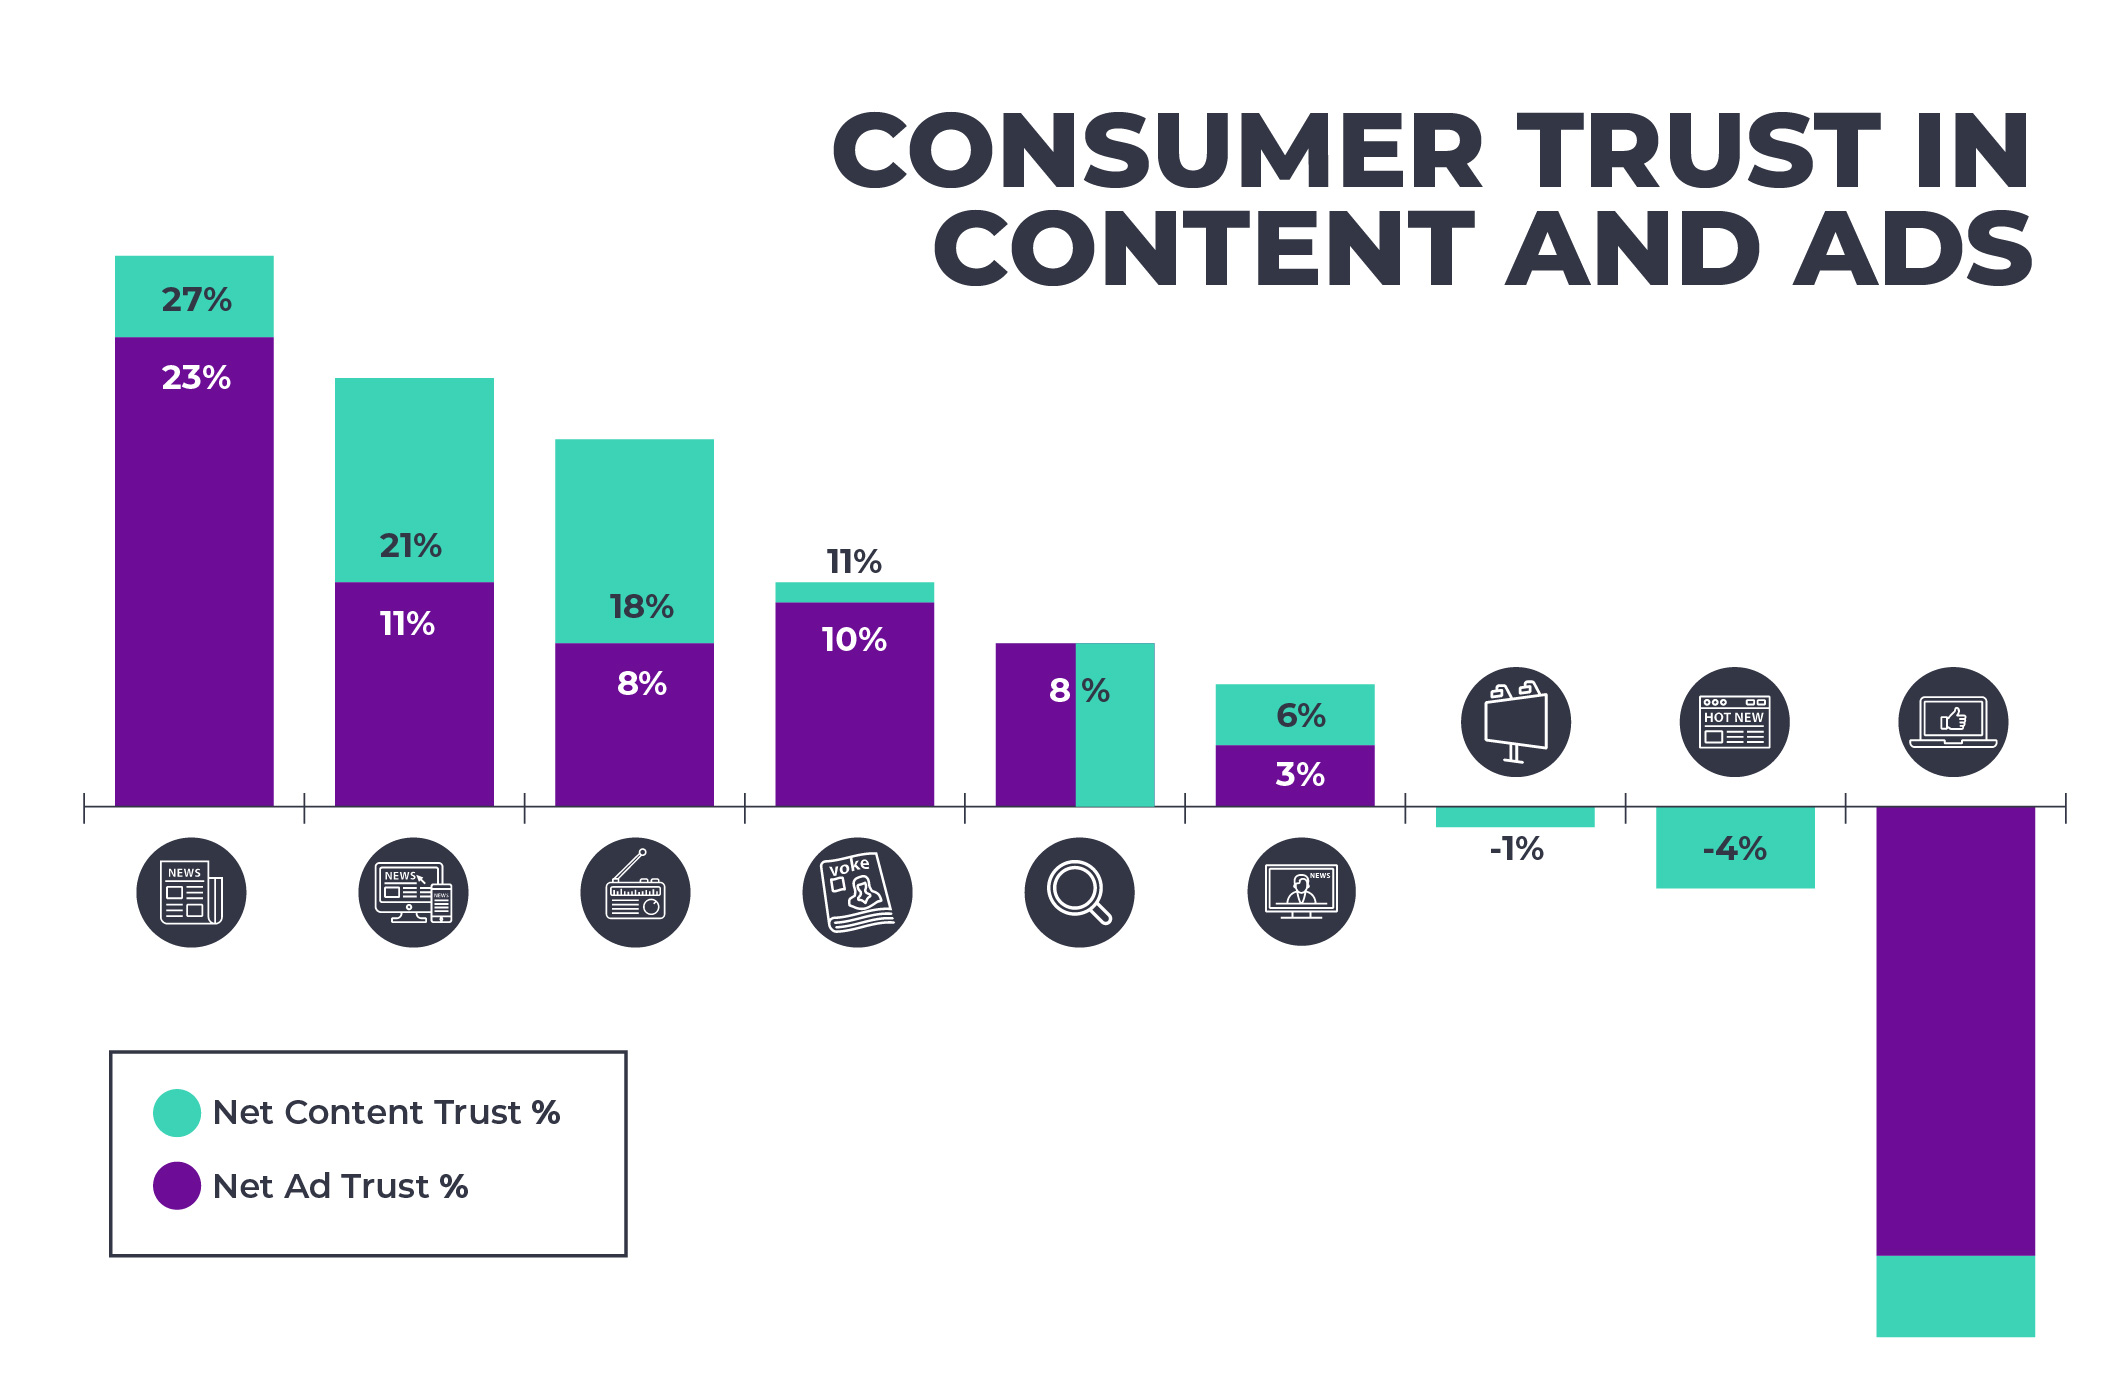 CONSUMER TRUST IN CONTENT AND ADS